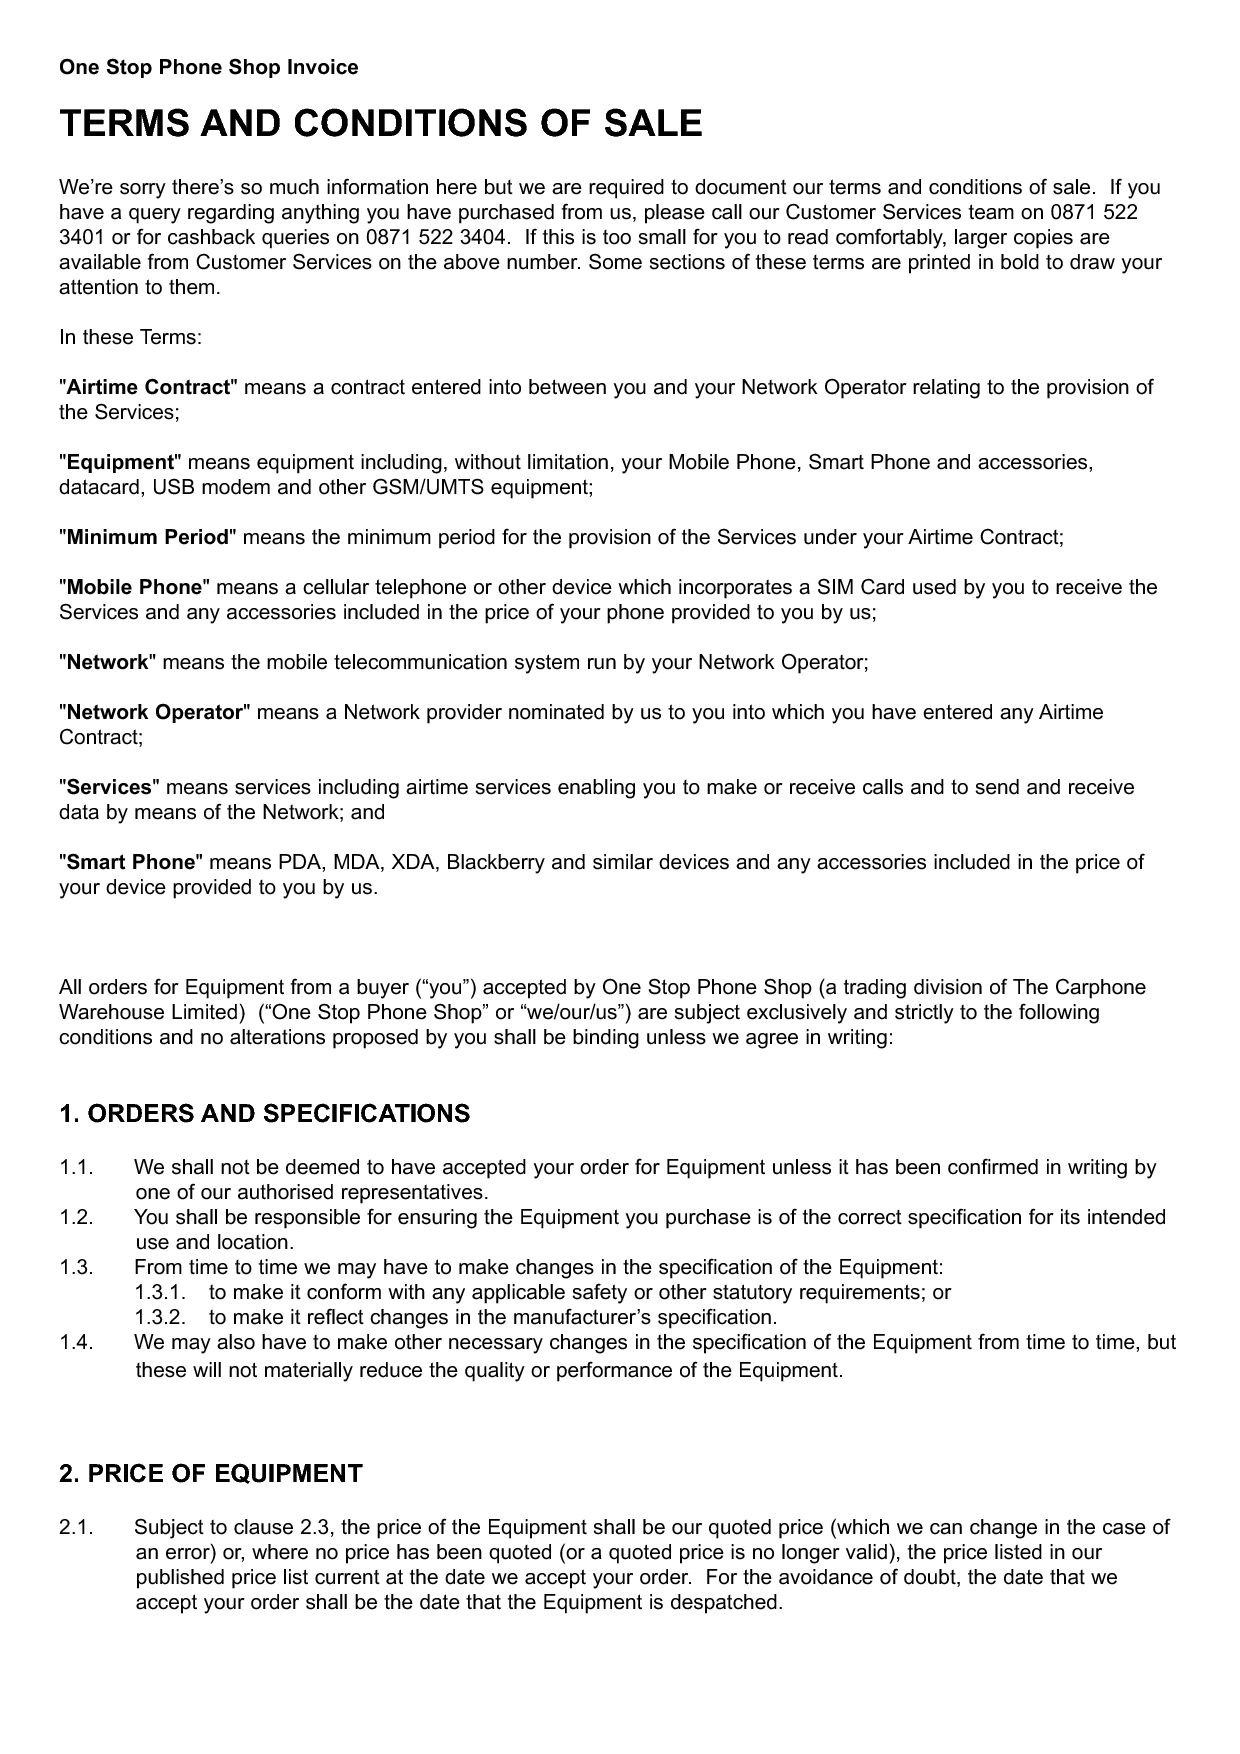 Invoice Payment Terms And Conditions Invoice Template Free With Regard To Membership Card Terms And Conditions Template